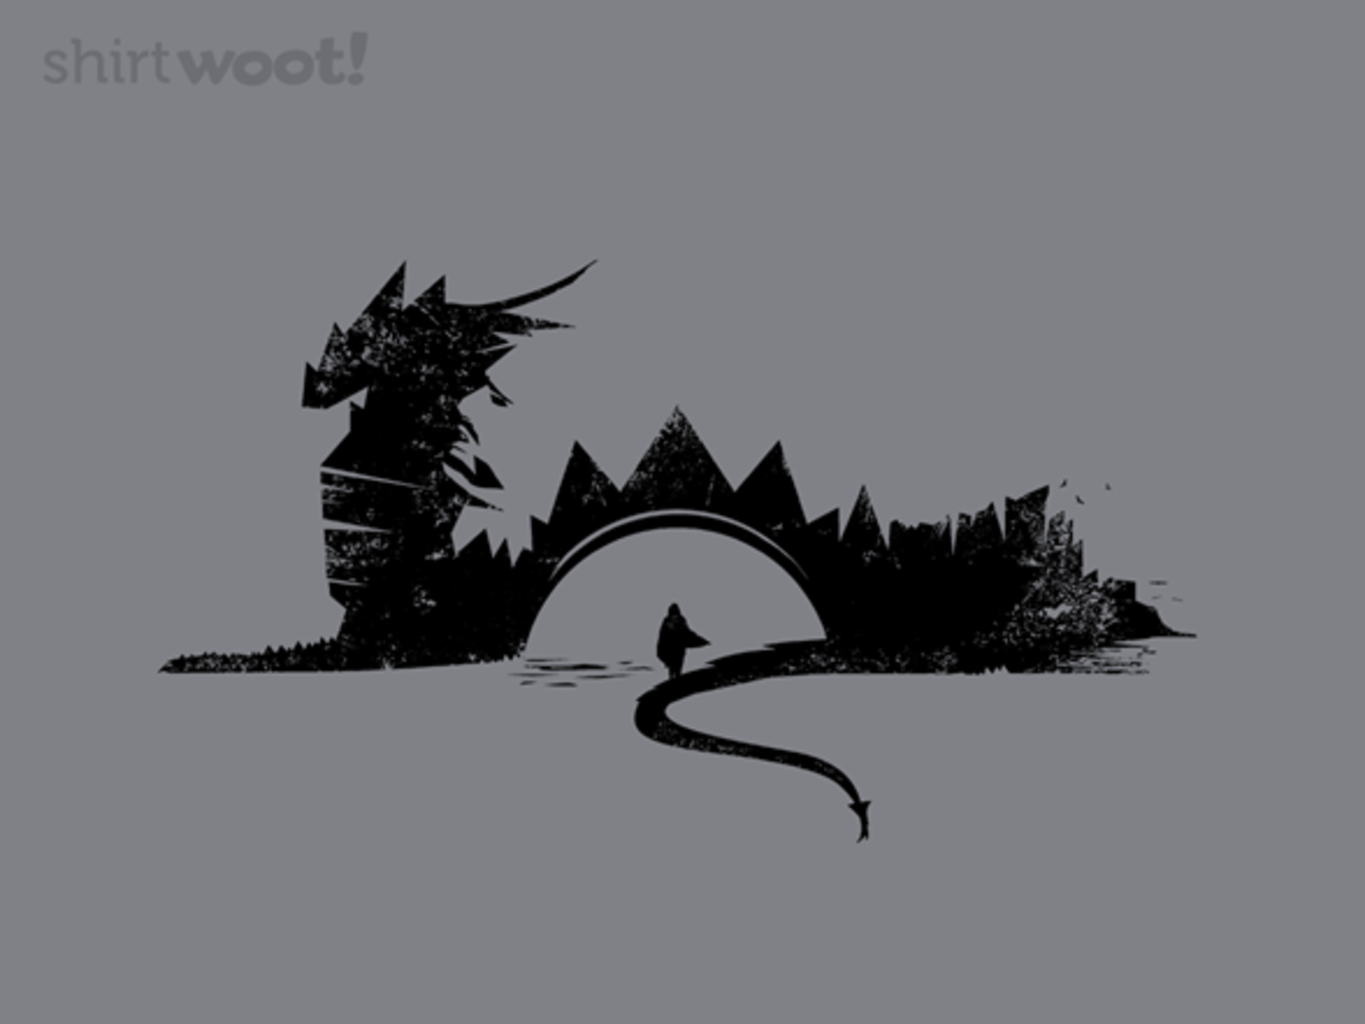 Woot!: You Know Nothing - $15.00 + Free shipping